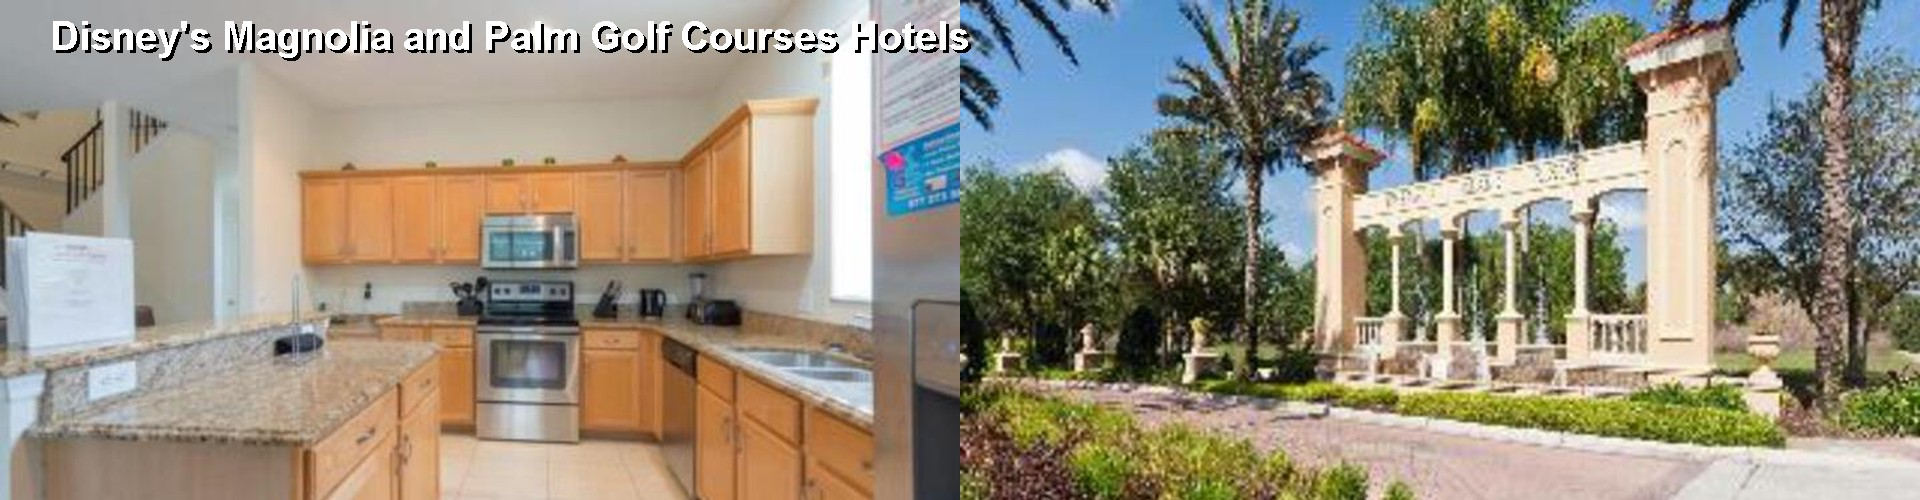 5 Best Hotels near Disney's Magnolia and Palm Golf Courses